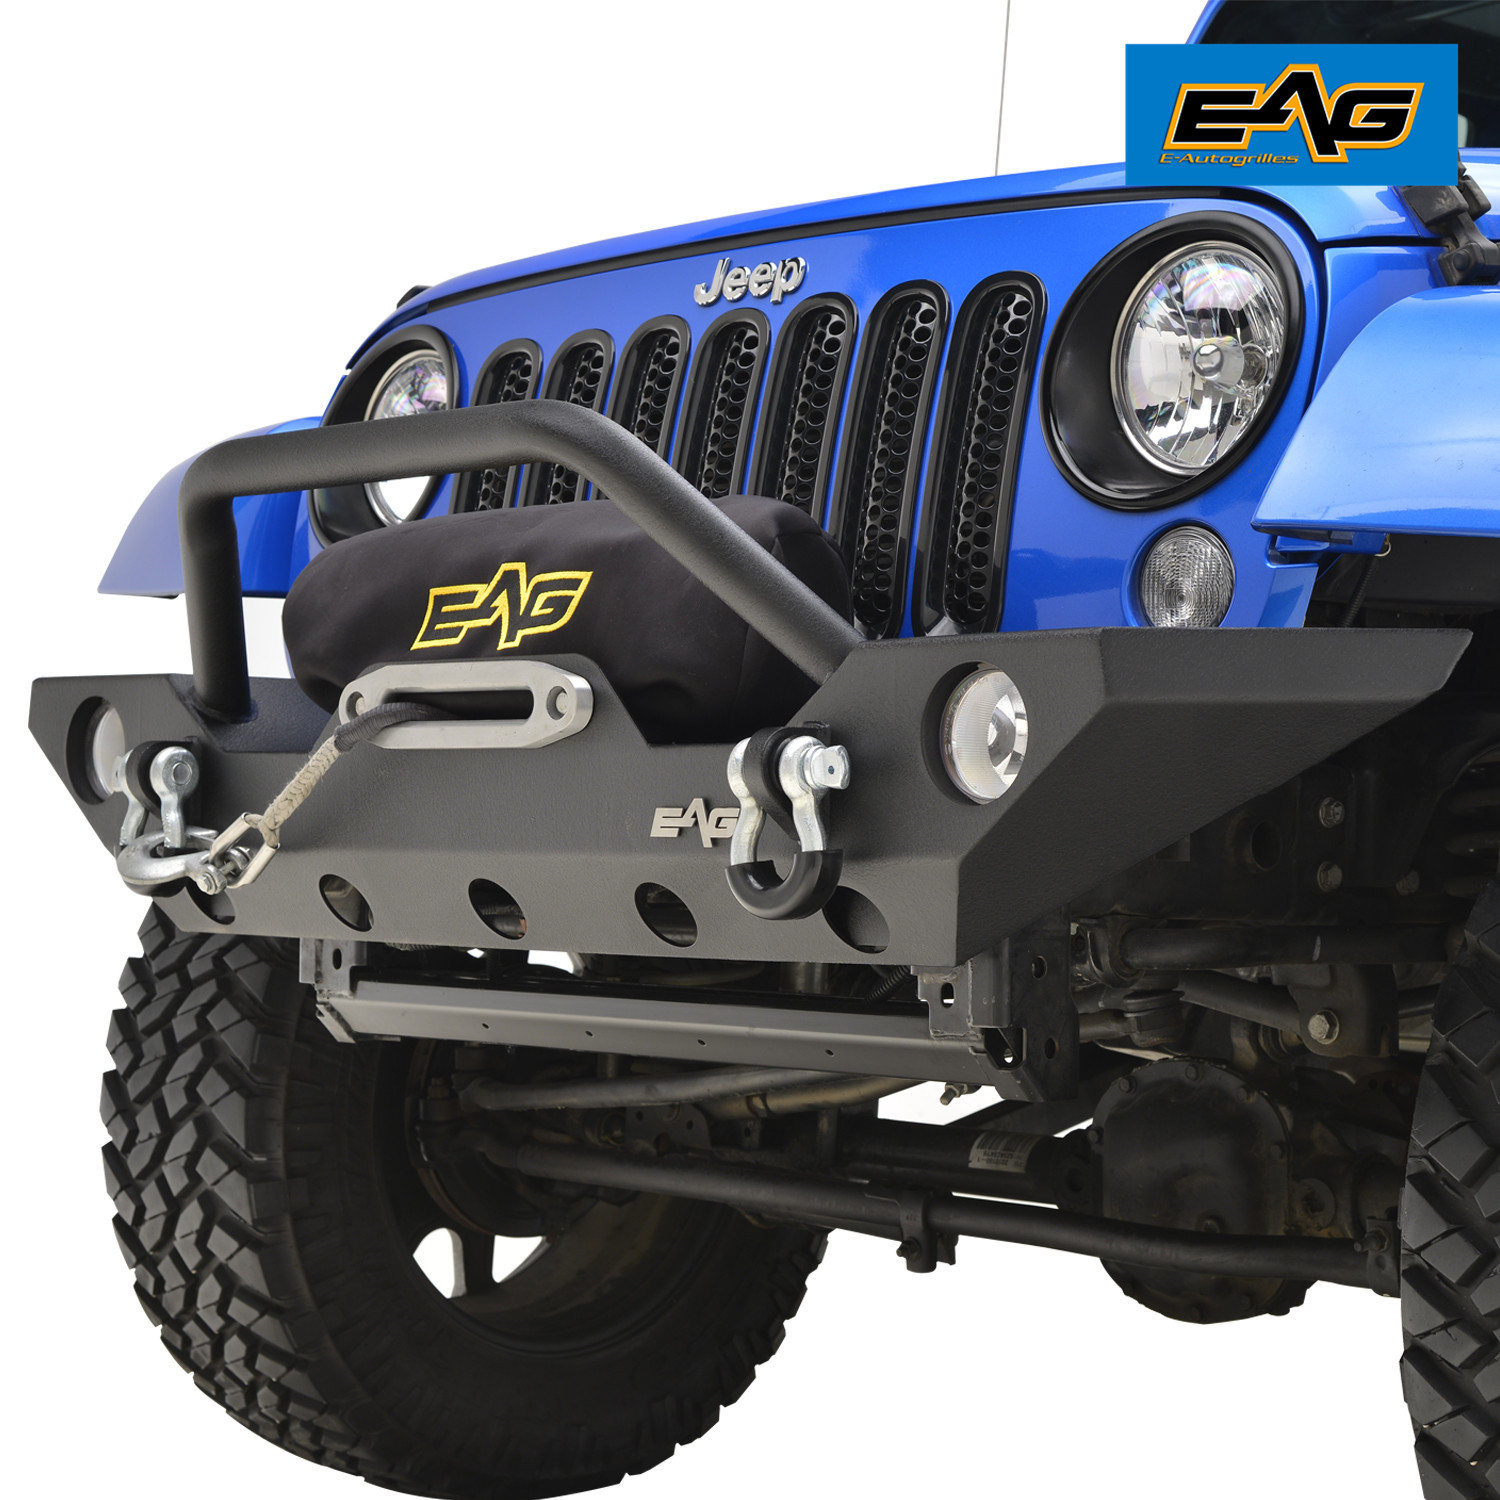 EAG Front Bumper with Winch Plate for 07-18 Jeep Wrangler JK Rock Crawler